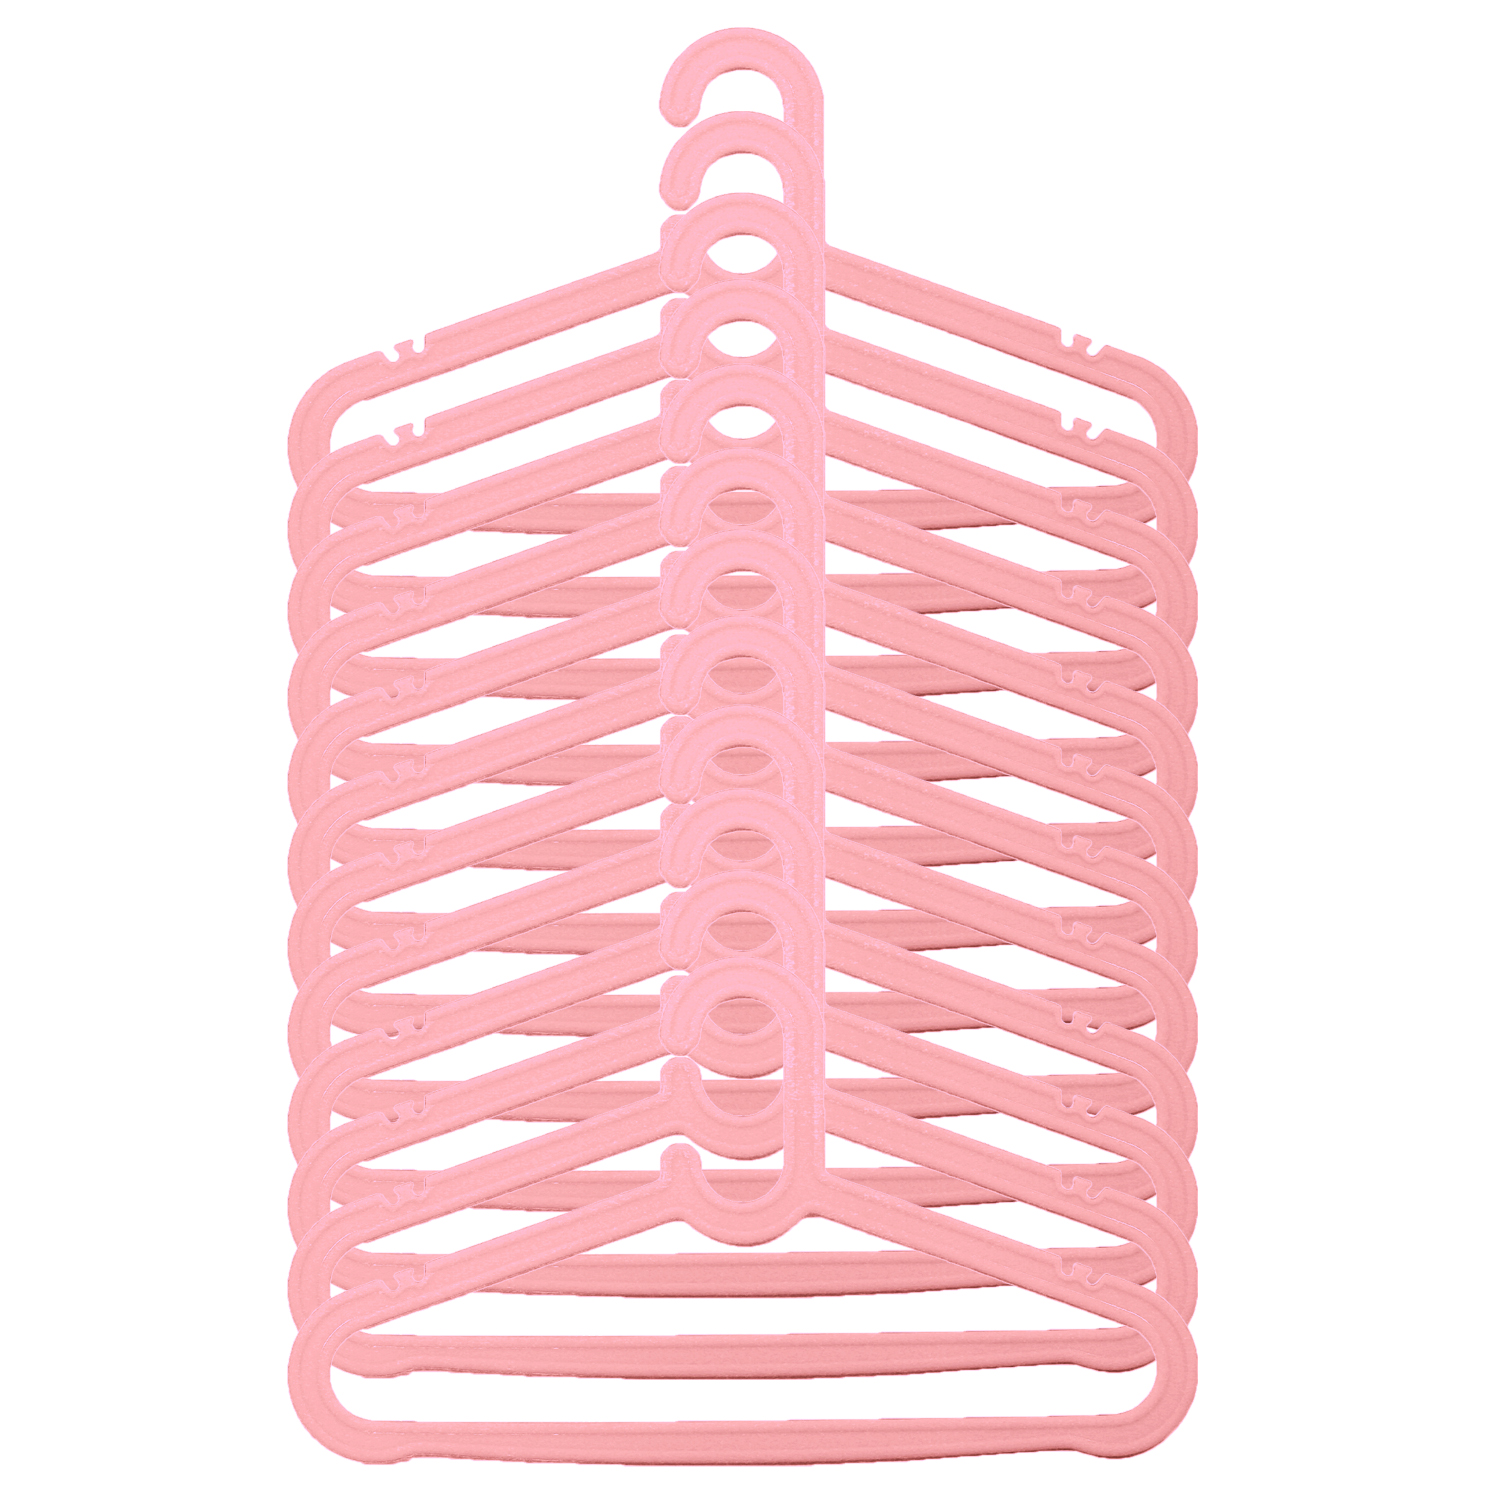 Kuber Industries Plastic 12 Pcs Hanger Set for Wardrobe (Light Pink)-CTKTC21407